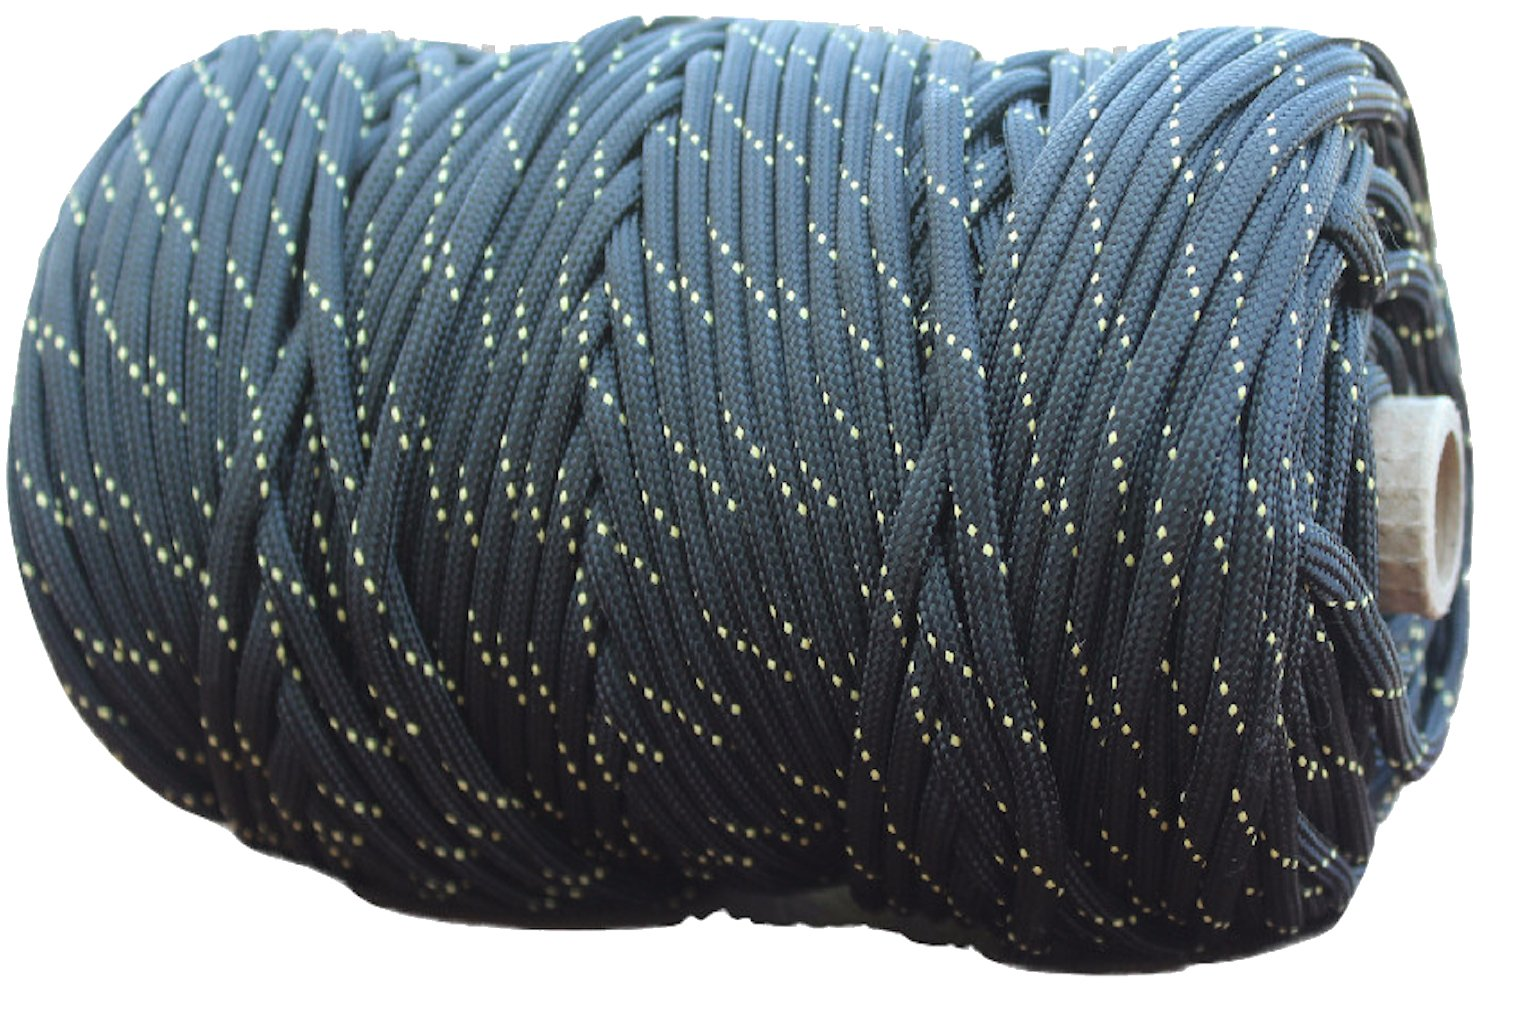 X-CORDS Paracord 850 Lb Stronger Than Paracord 550 and 750! Made by Us Government Certified Contractor Exclusively Paracord (300' Tube Black Diamond Kevlar) by X-CORDS